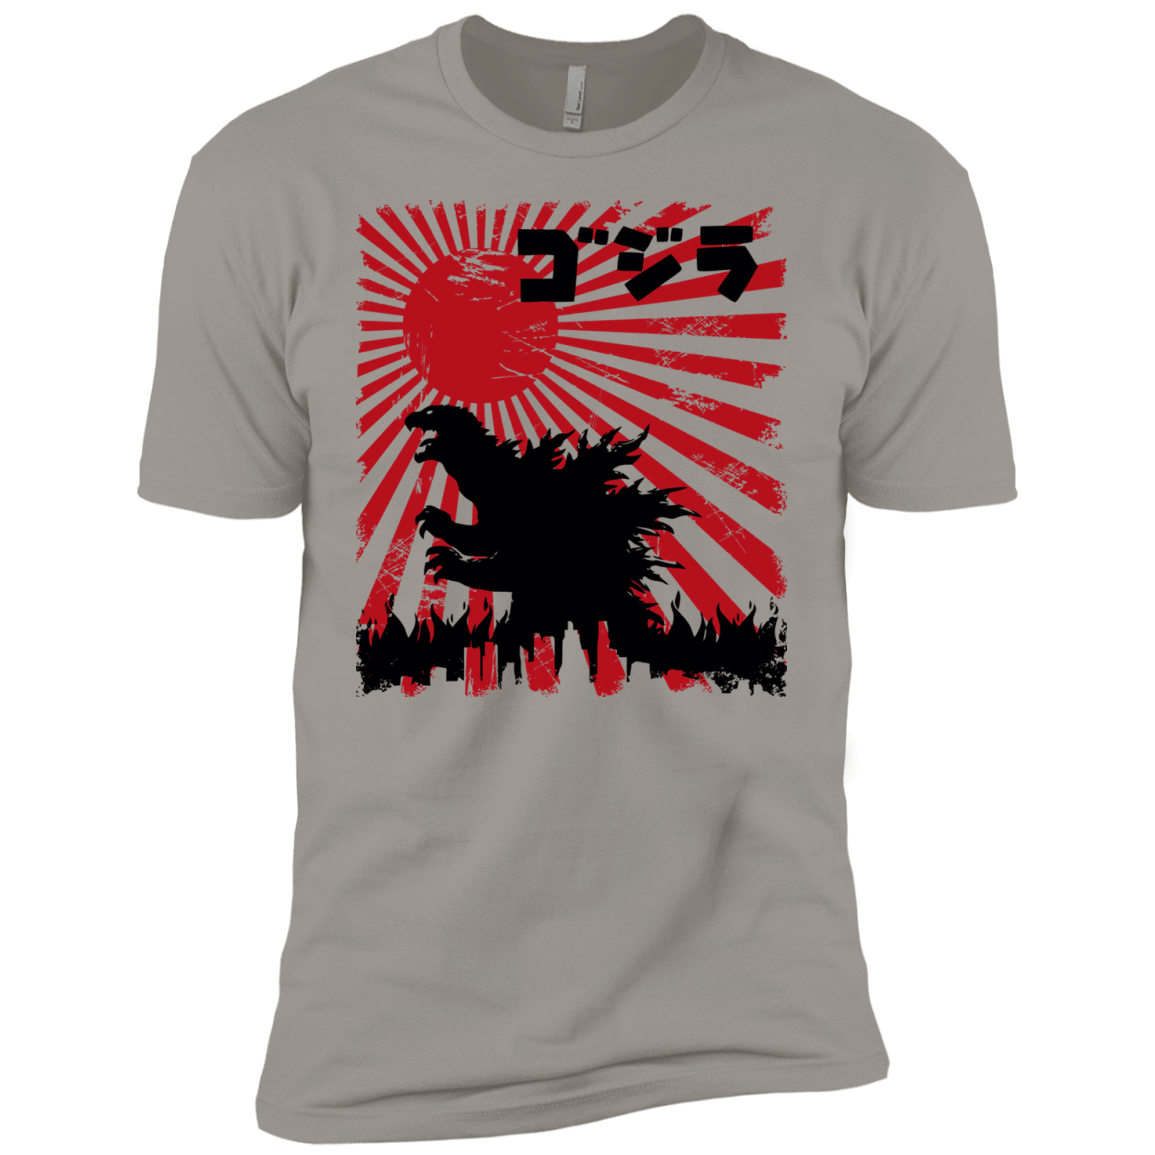 King Kaiju Boys Premium T-Shirt